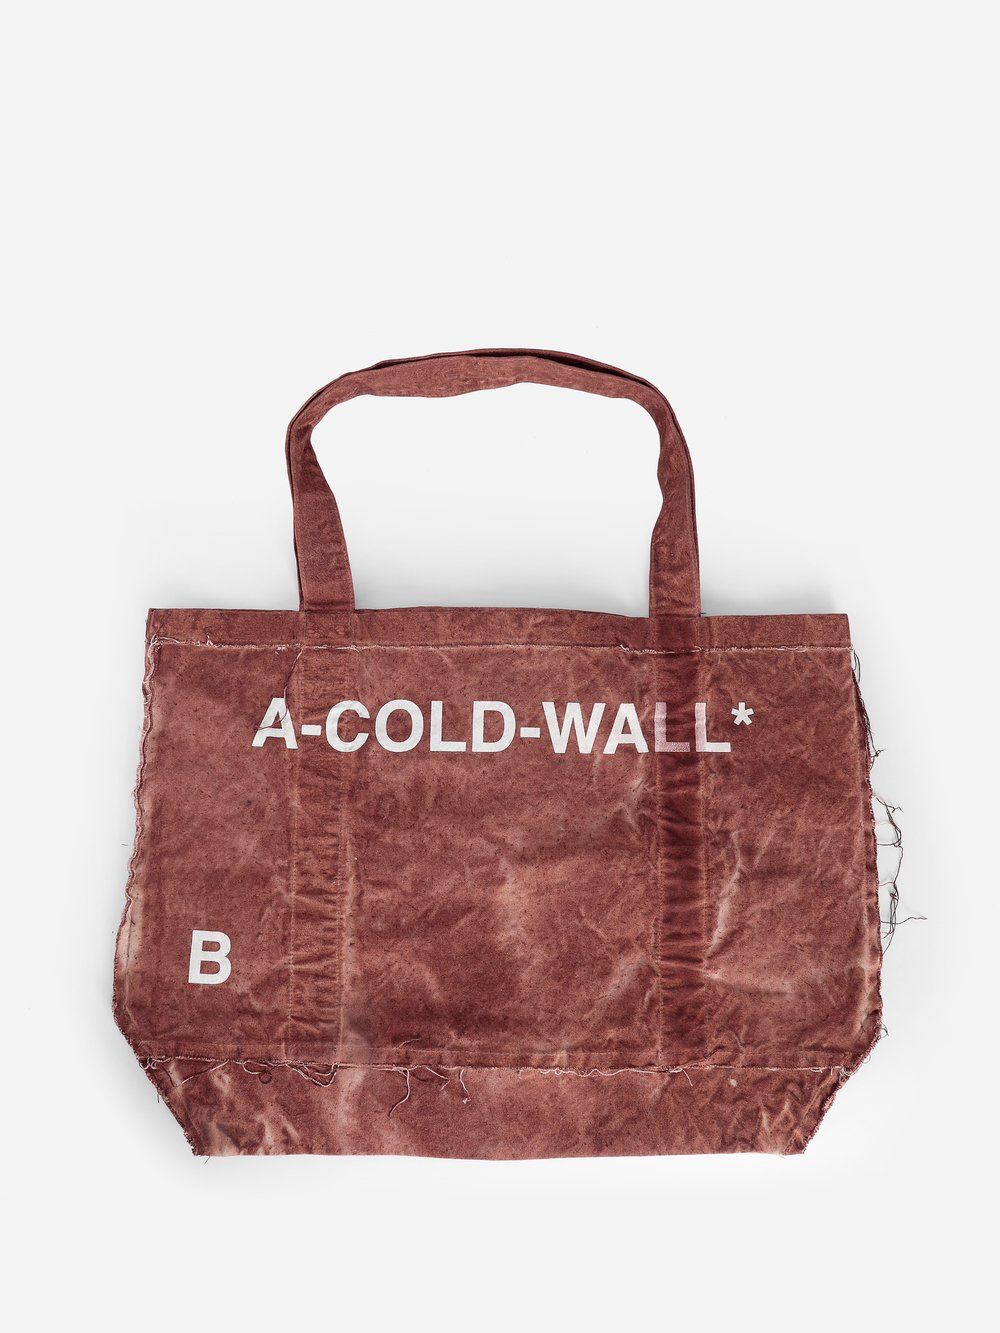 A-Cold-Wall* Totes A COLD WALL* TOTE BAGS